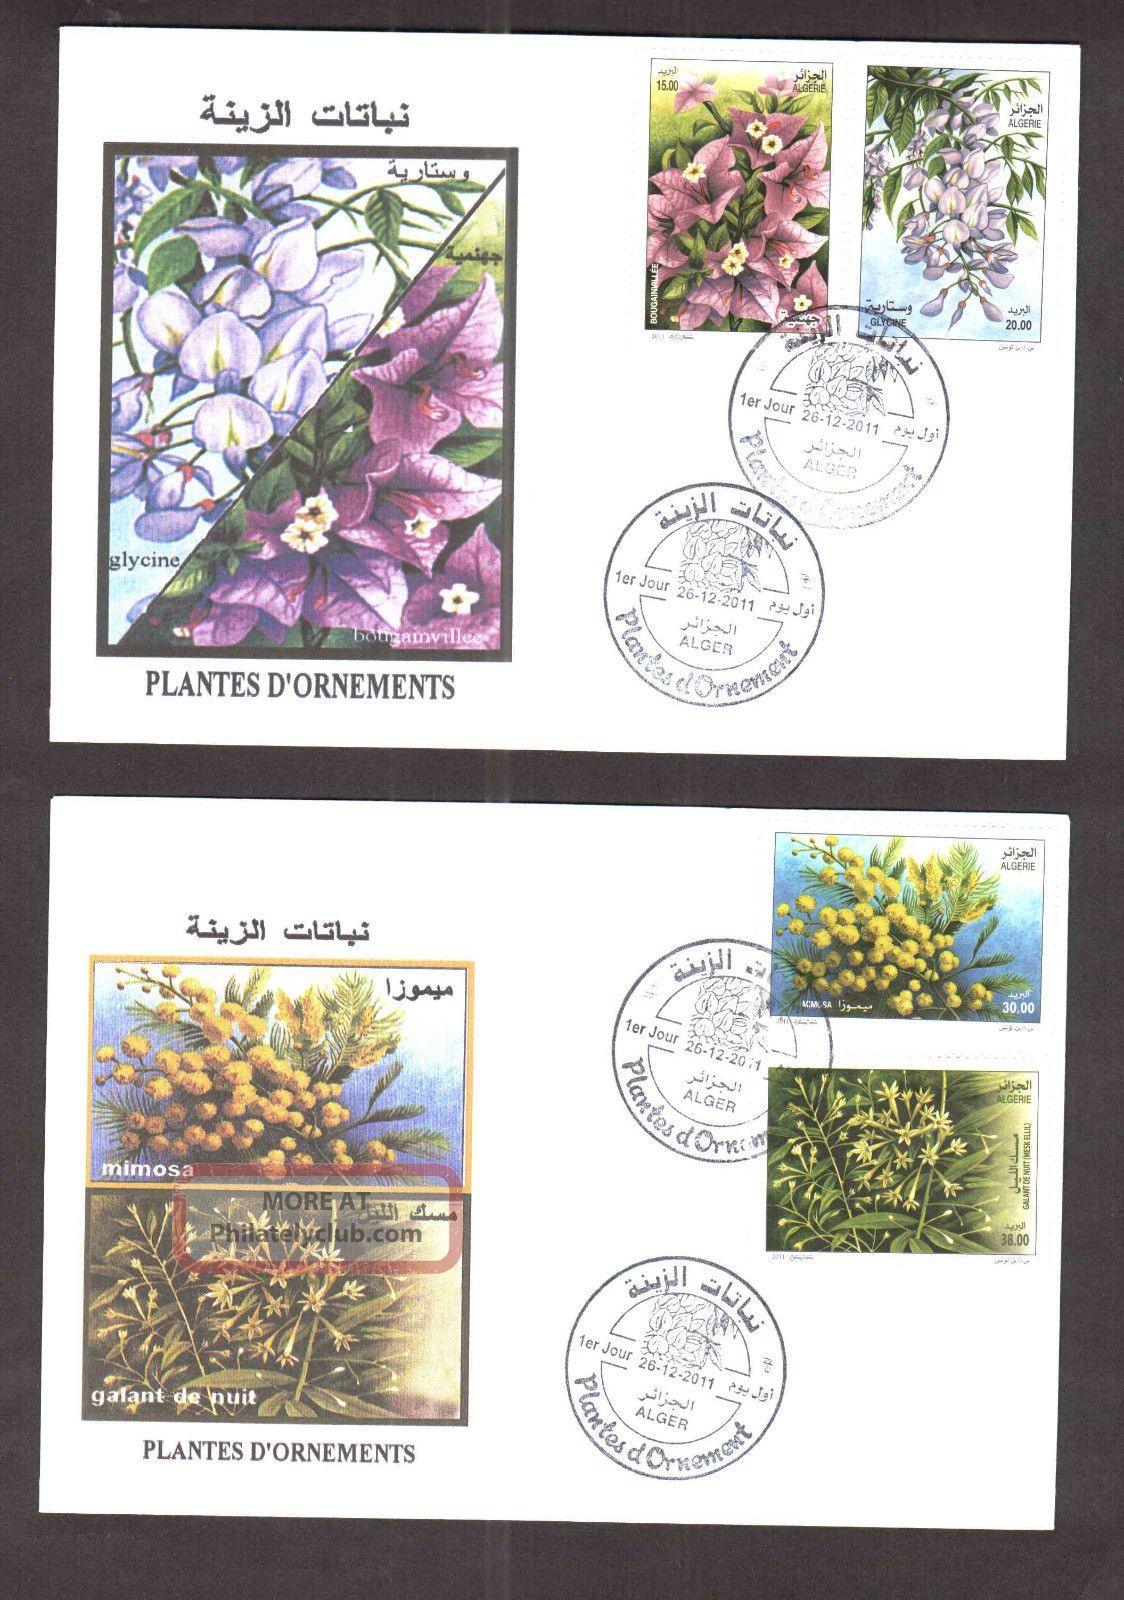 Algeria - 2011 - Ornement Plants - 4v,  Dec 267h,  2011 - 02 Fdc ' S,  Topical Cancel Topical Stamps photo